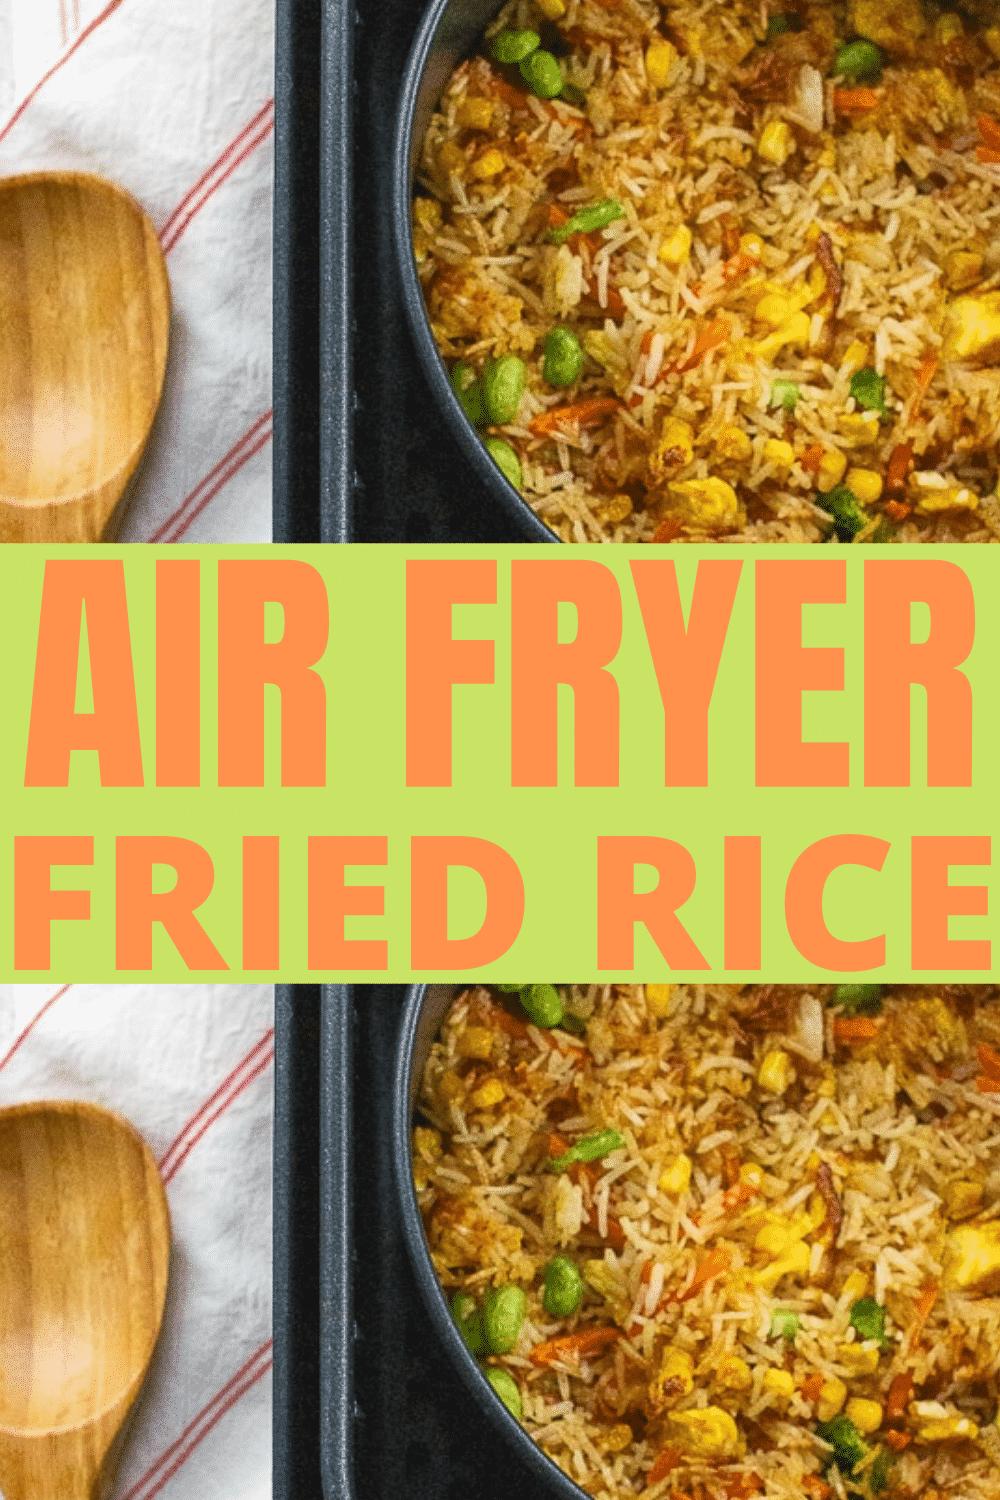 This comforting Air Fryer Fried Rice is a perfect quick dish you can make with whatever proteins and veggies you have around the house! #friedrice #airfryerrice via @vegetarianmamma